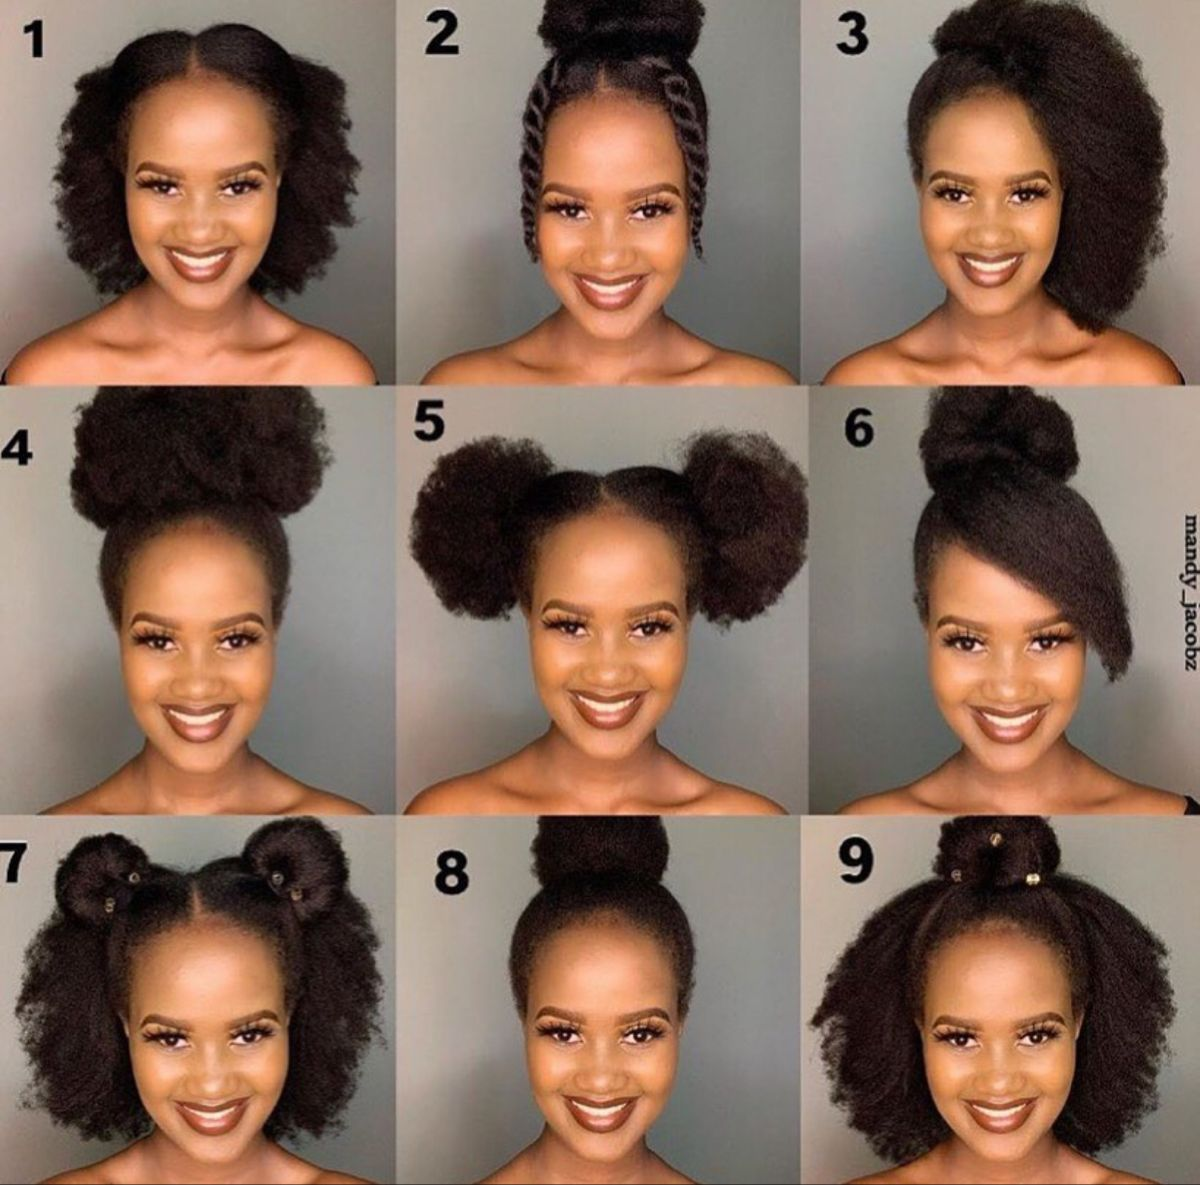 Simple Natural Hairstyles In 2020 Natural Hair Styles Easy Natural Hair Styles Natural Hair Braids